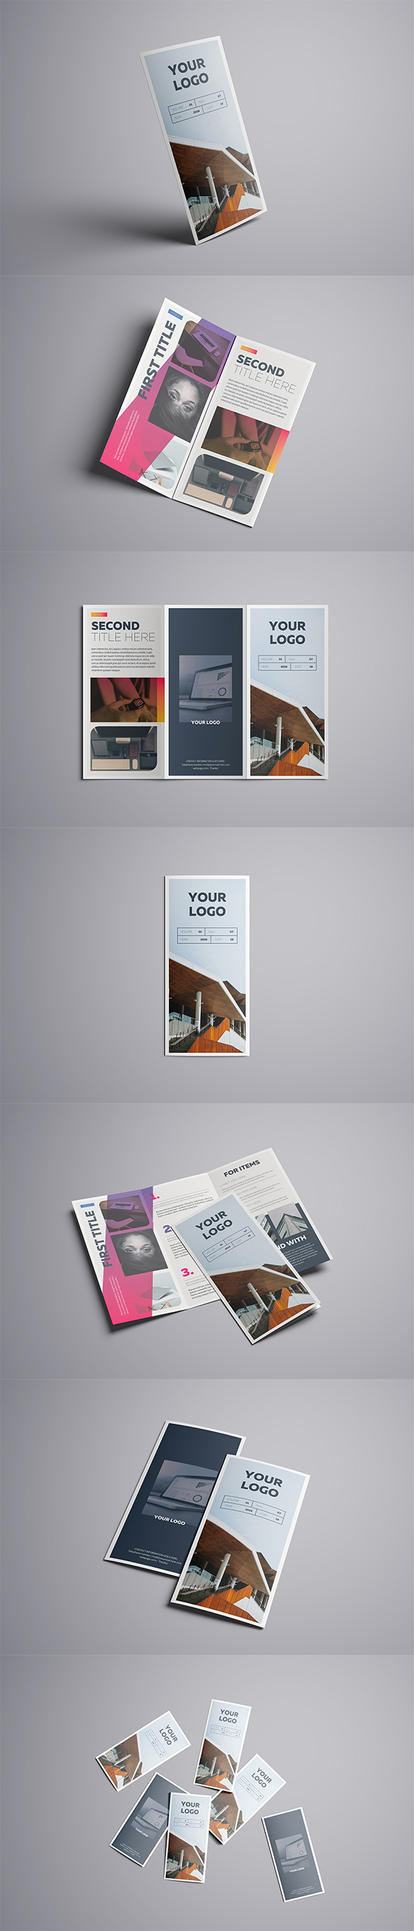 Gradient Trifold A4 Template by luuqas